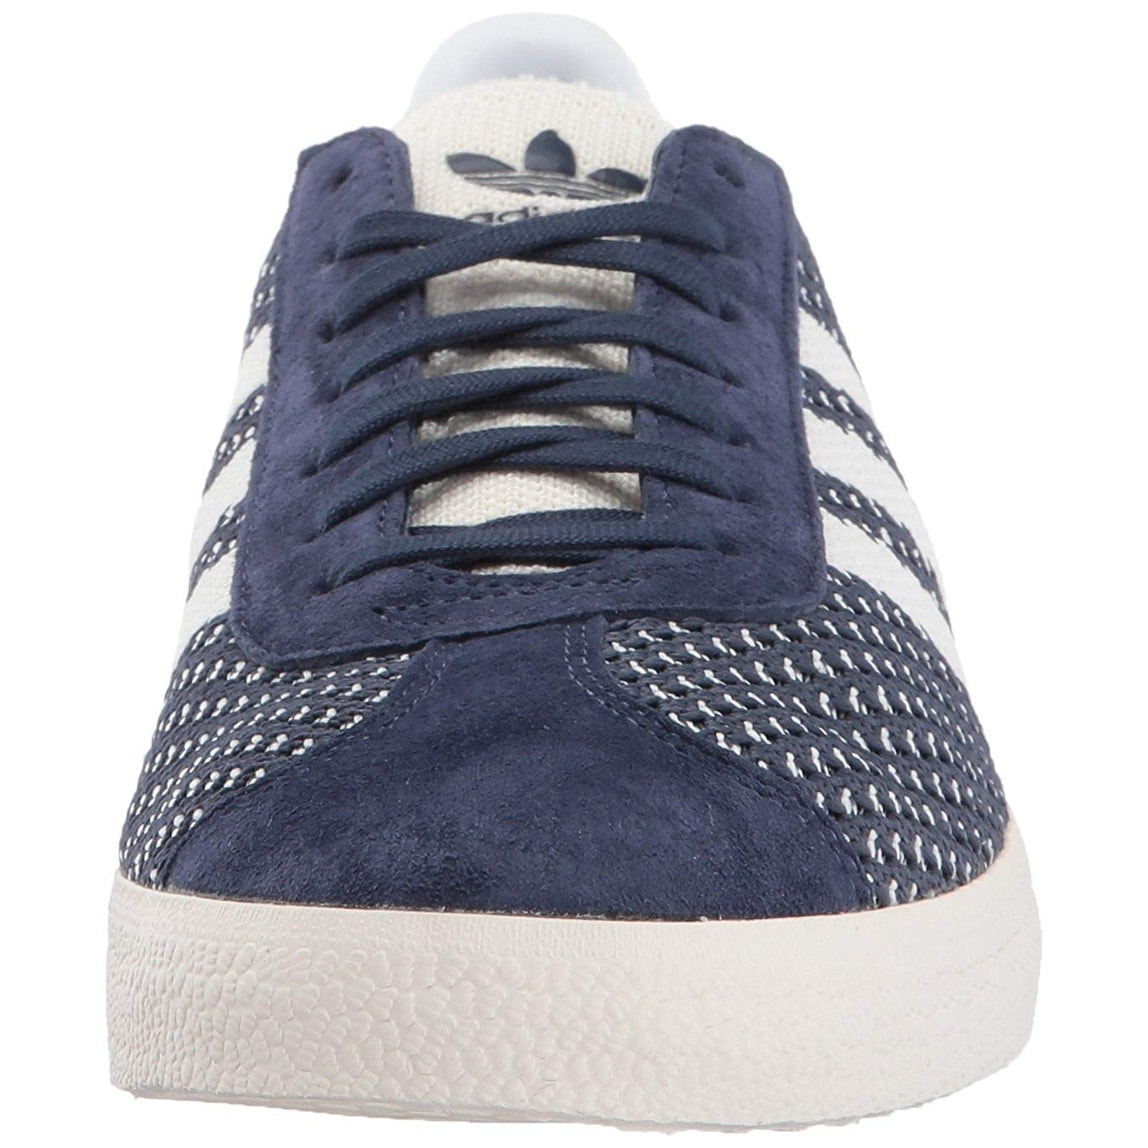 huge selection of ca2b5 cb78c Shop adidas Originals Men s Gazelle Pk Sneaker - Free Shipping Today -  Overstock - 22818630